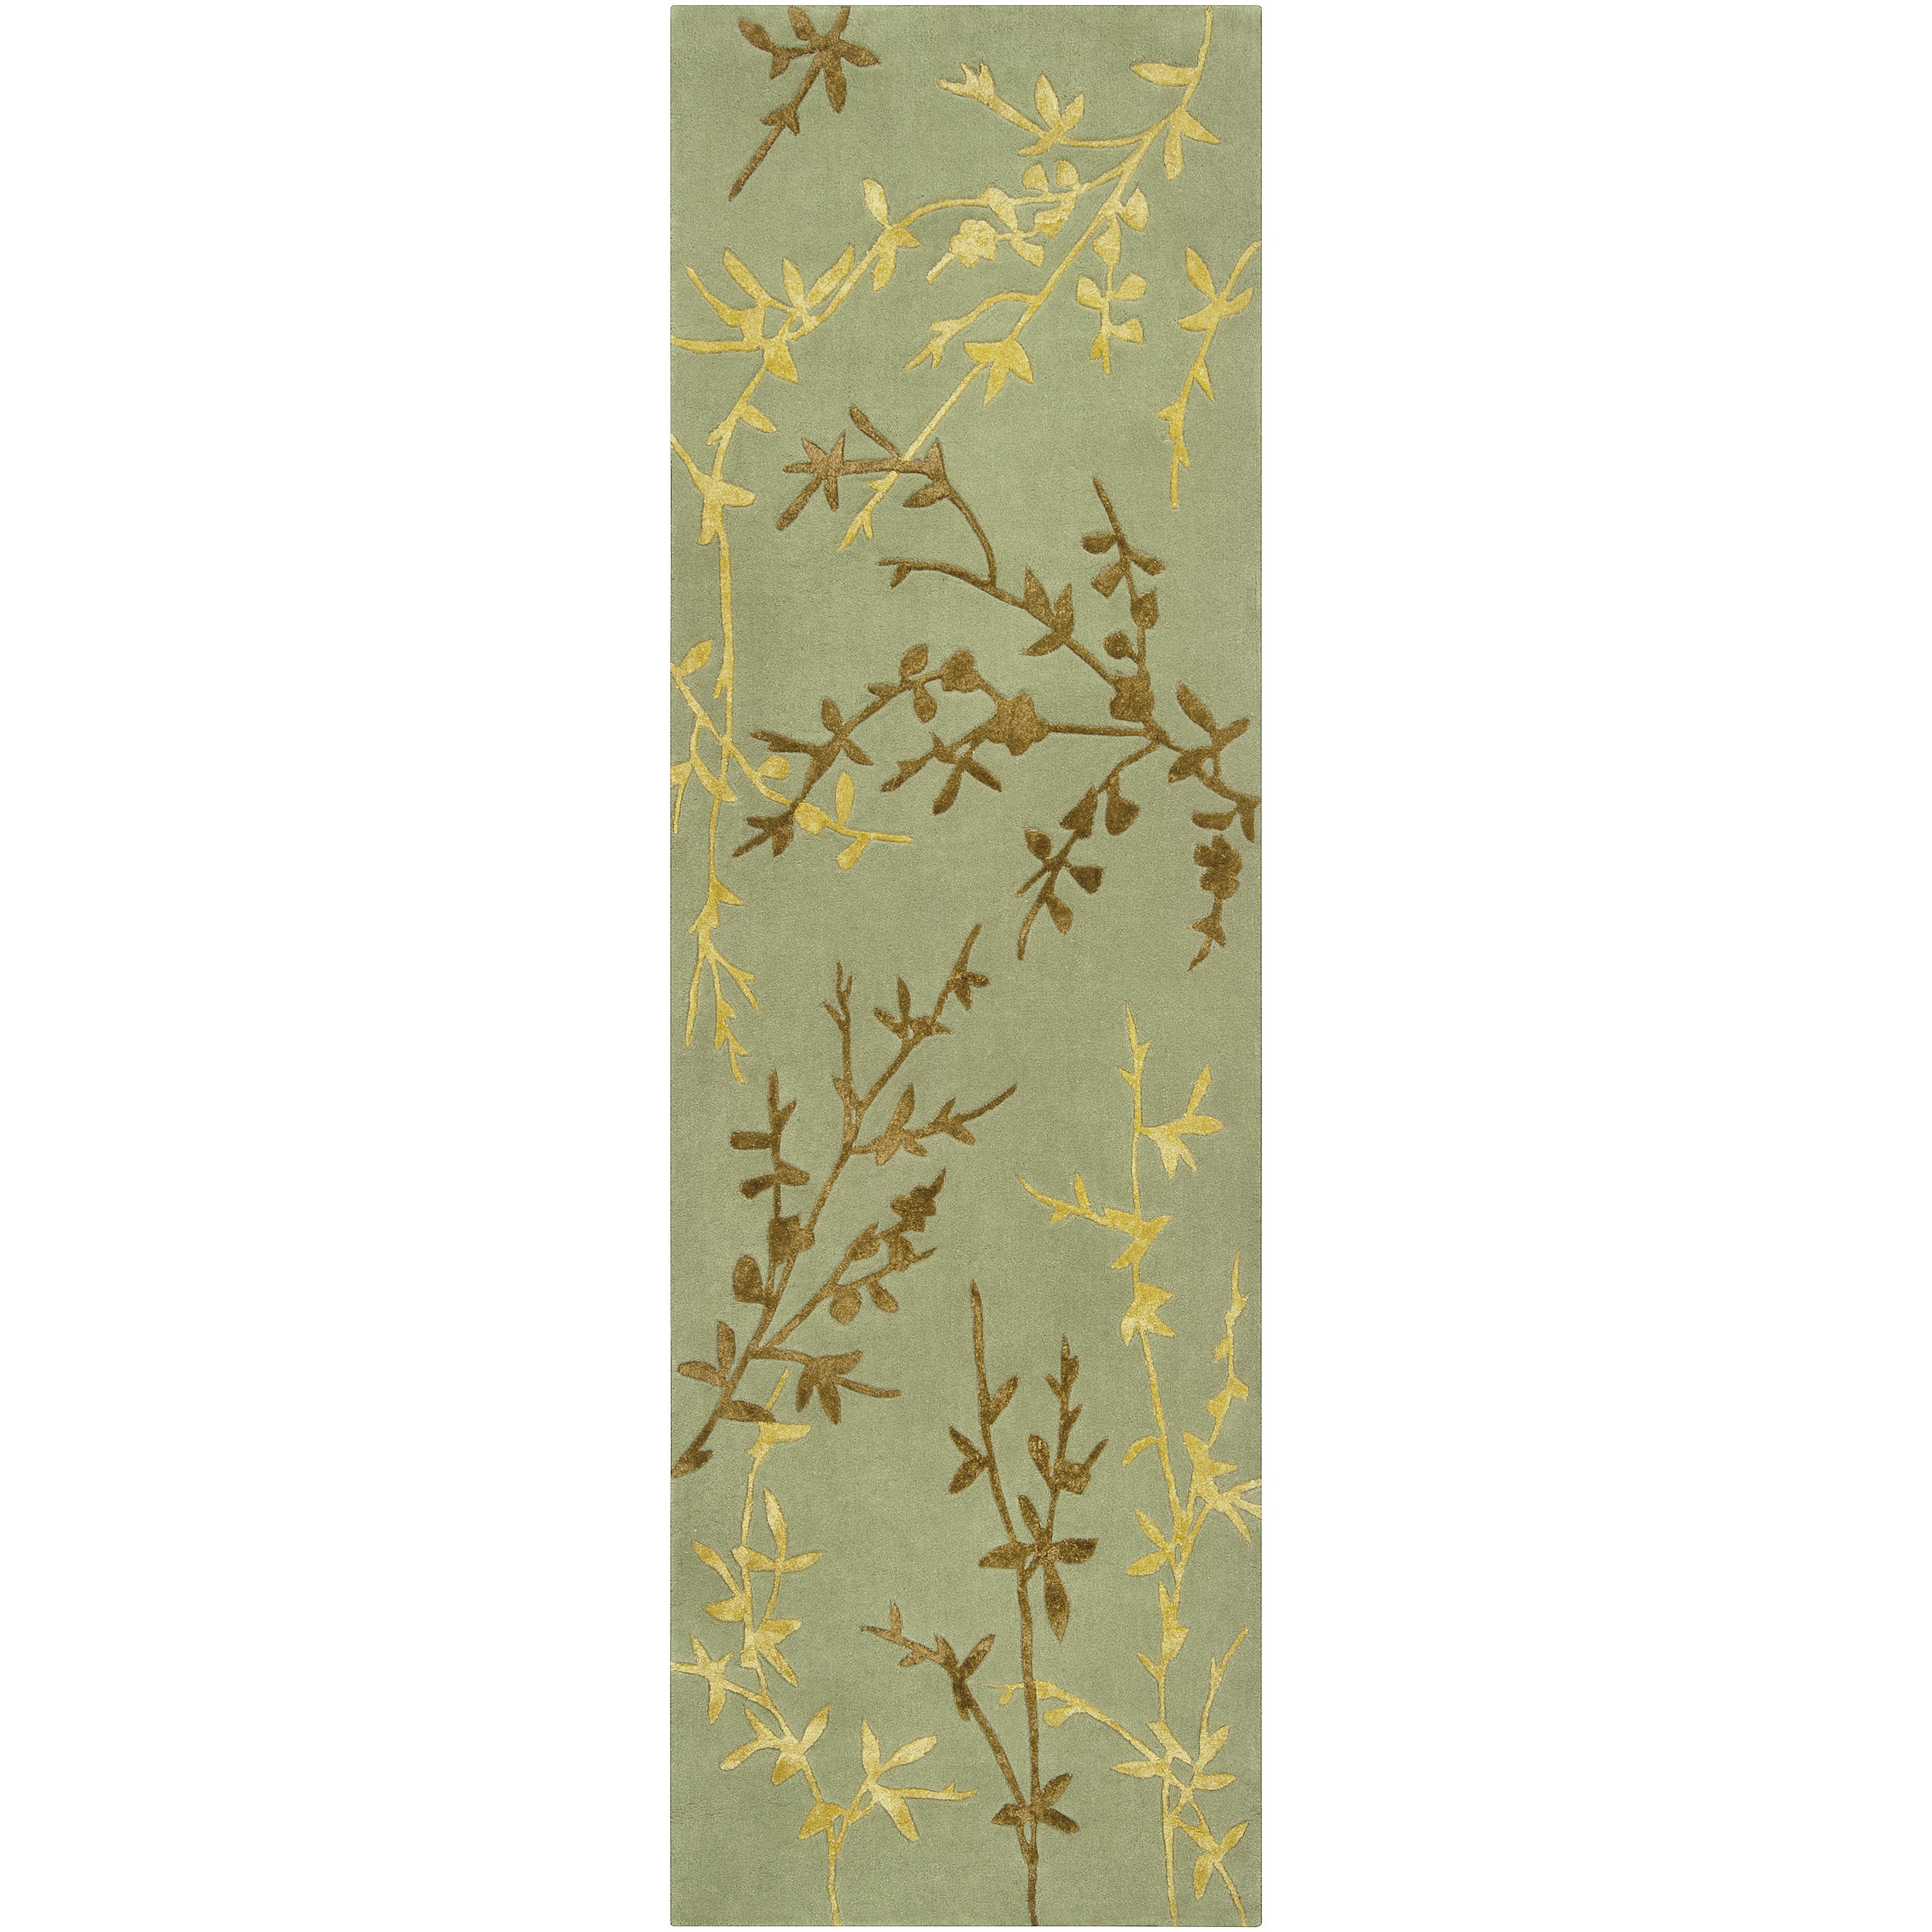 Hand-tufted Cantwell Light Green Floral Wool Blend Rug (2